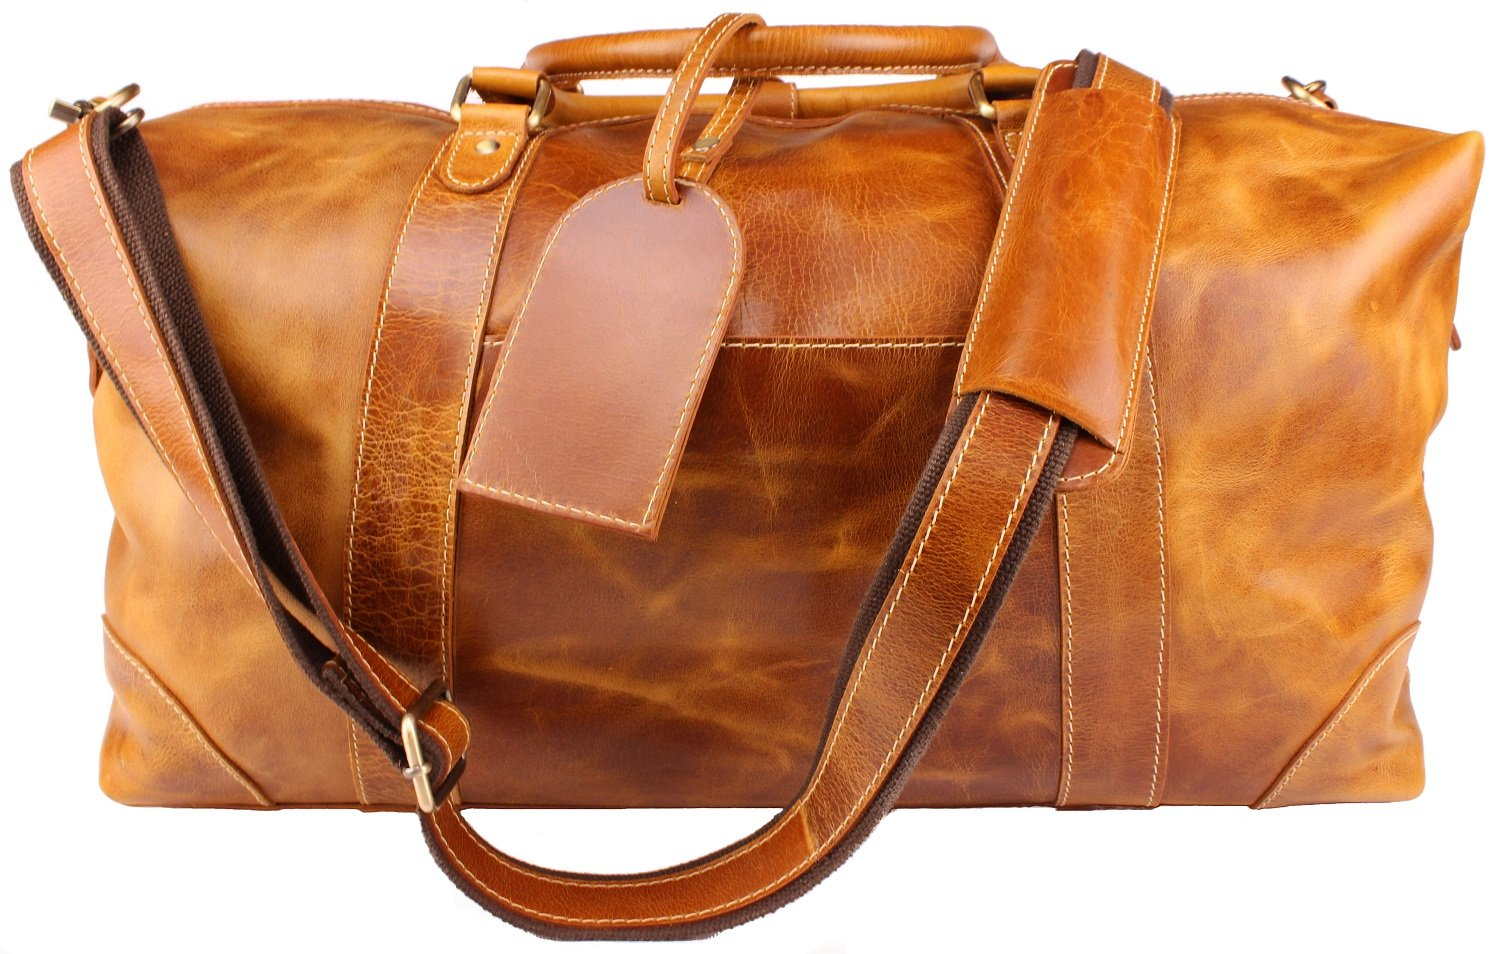 The Genuine Leather Travel Duffel travel product recommended by Syed Ali Hasan on Lifney.